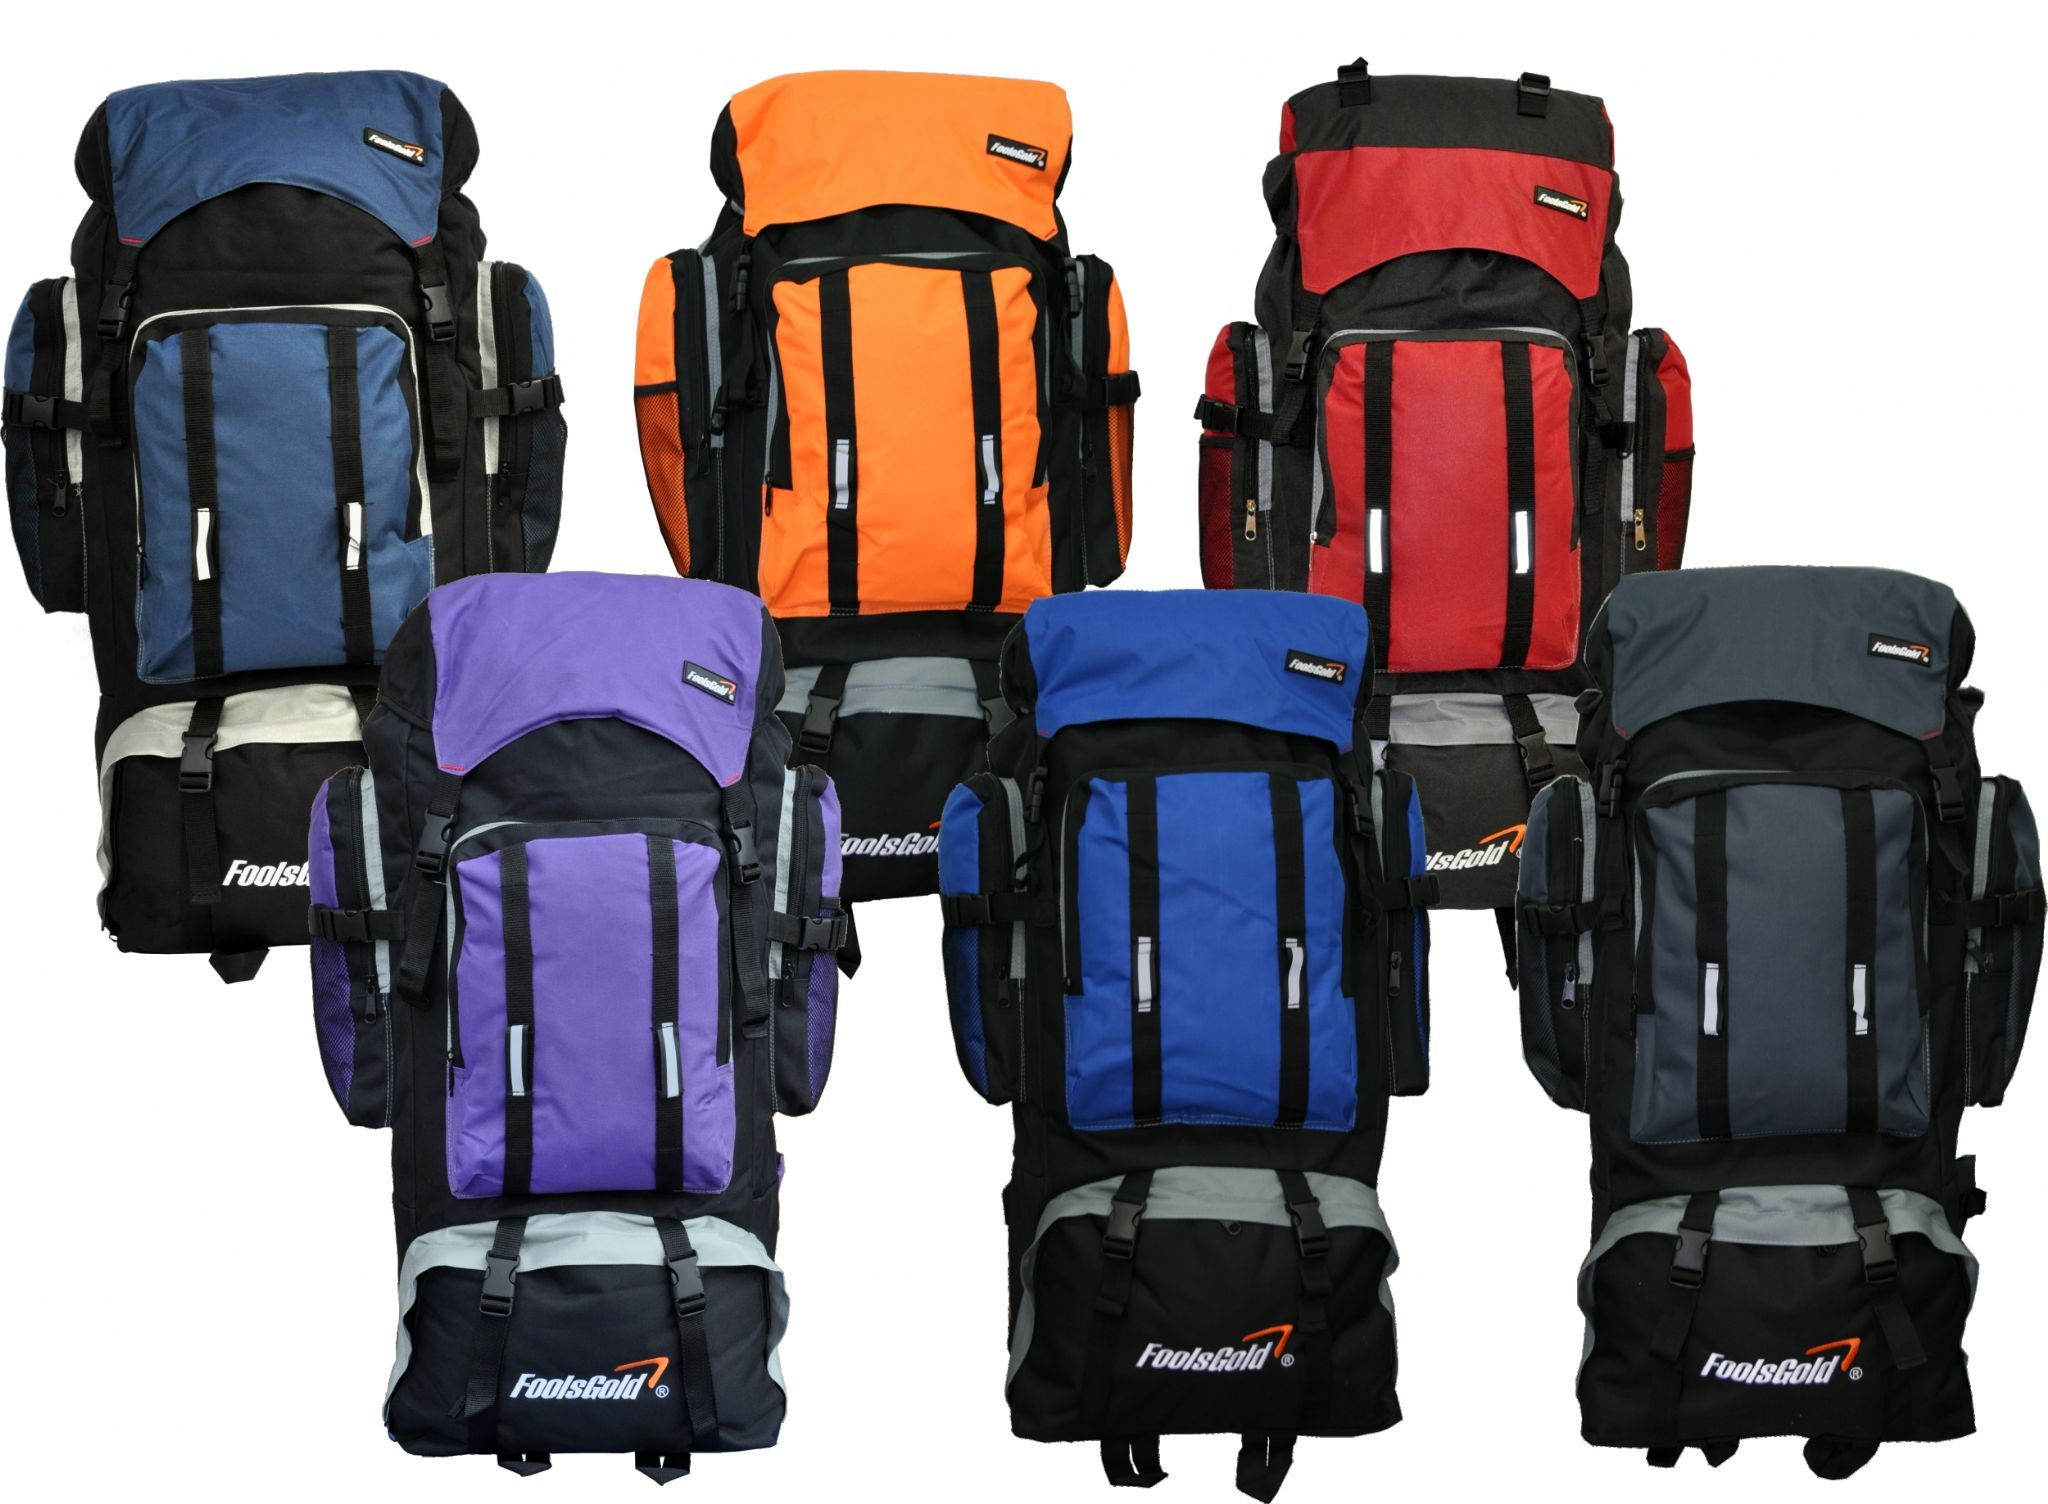 Large Travel Backpack vsDUvaIz